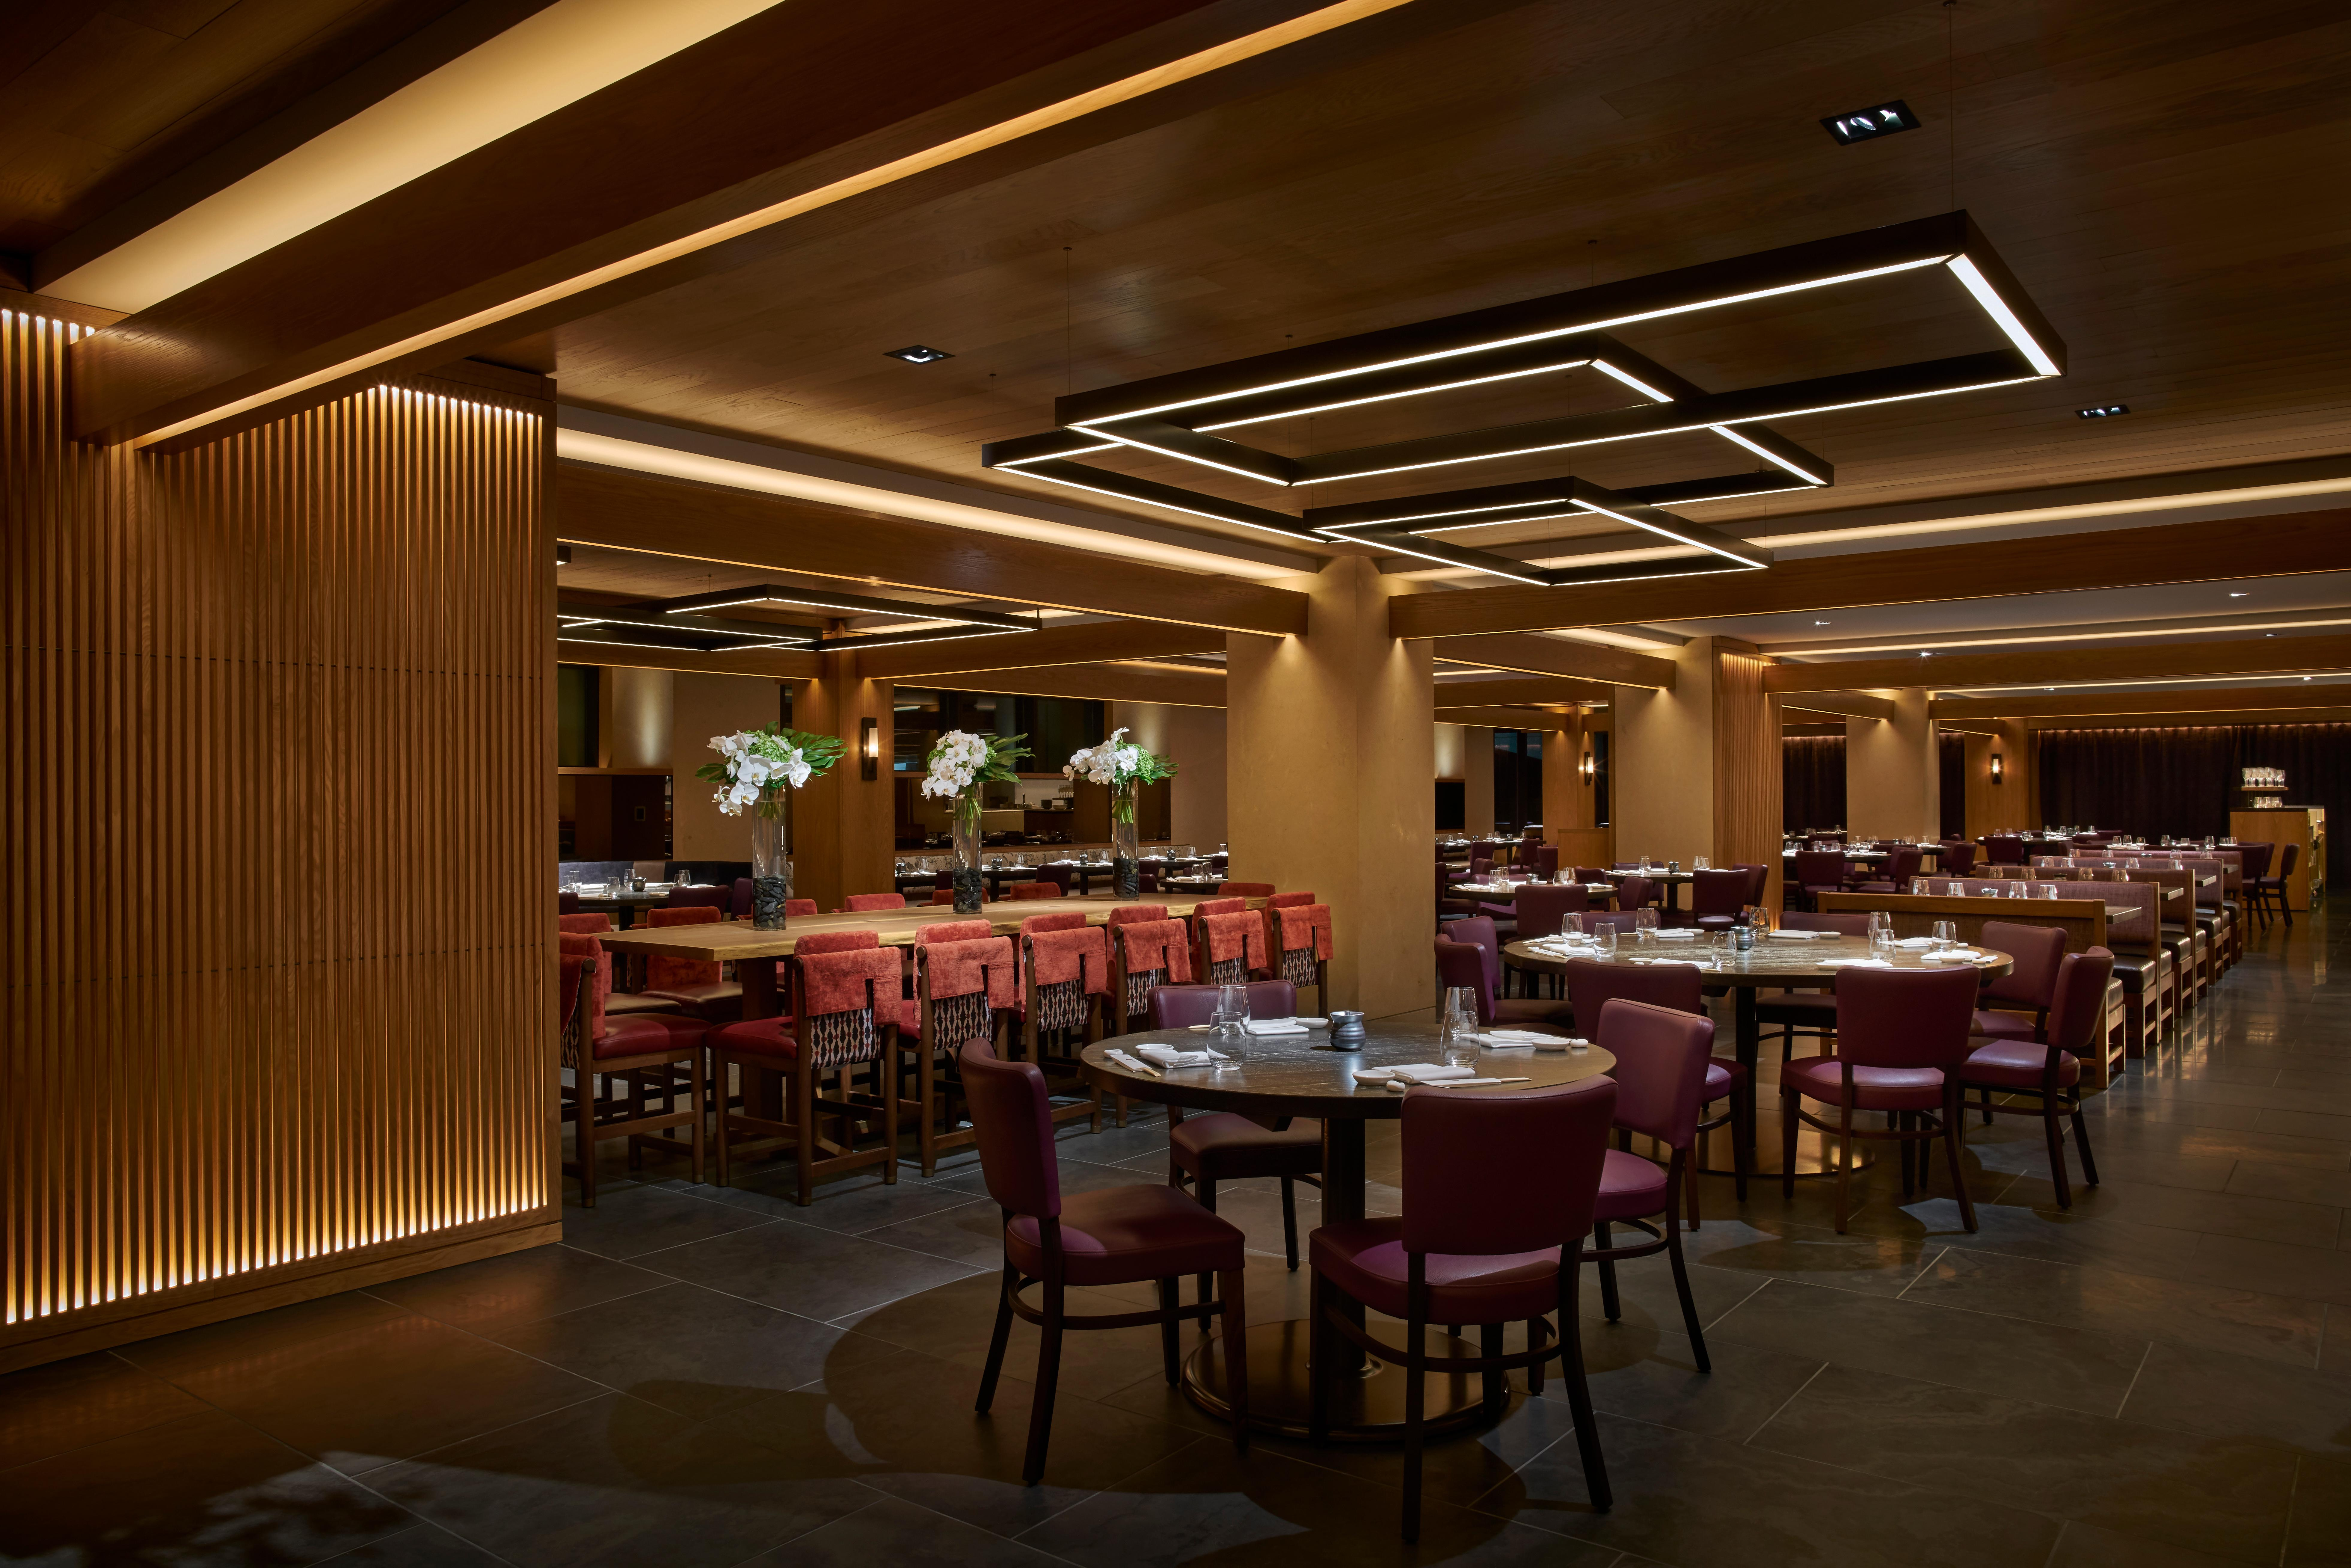 Nobu Washington DC Dining Room (Photo credit: Greg Powers)